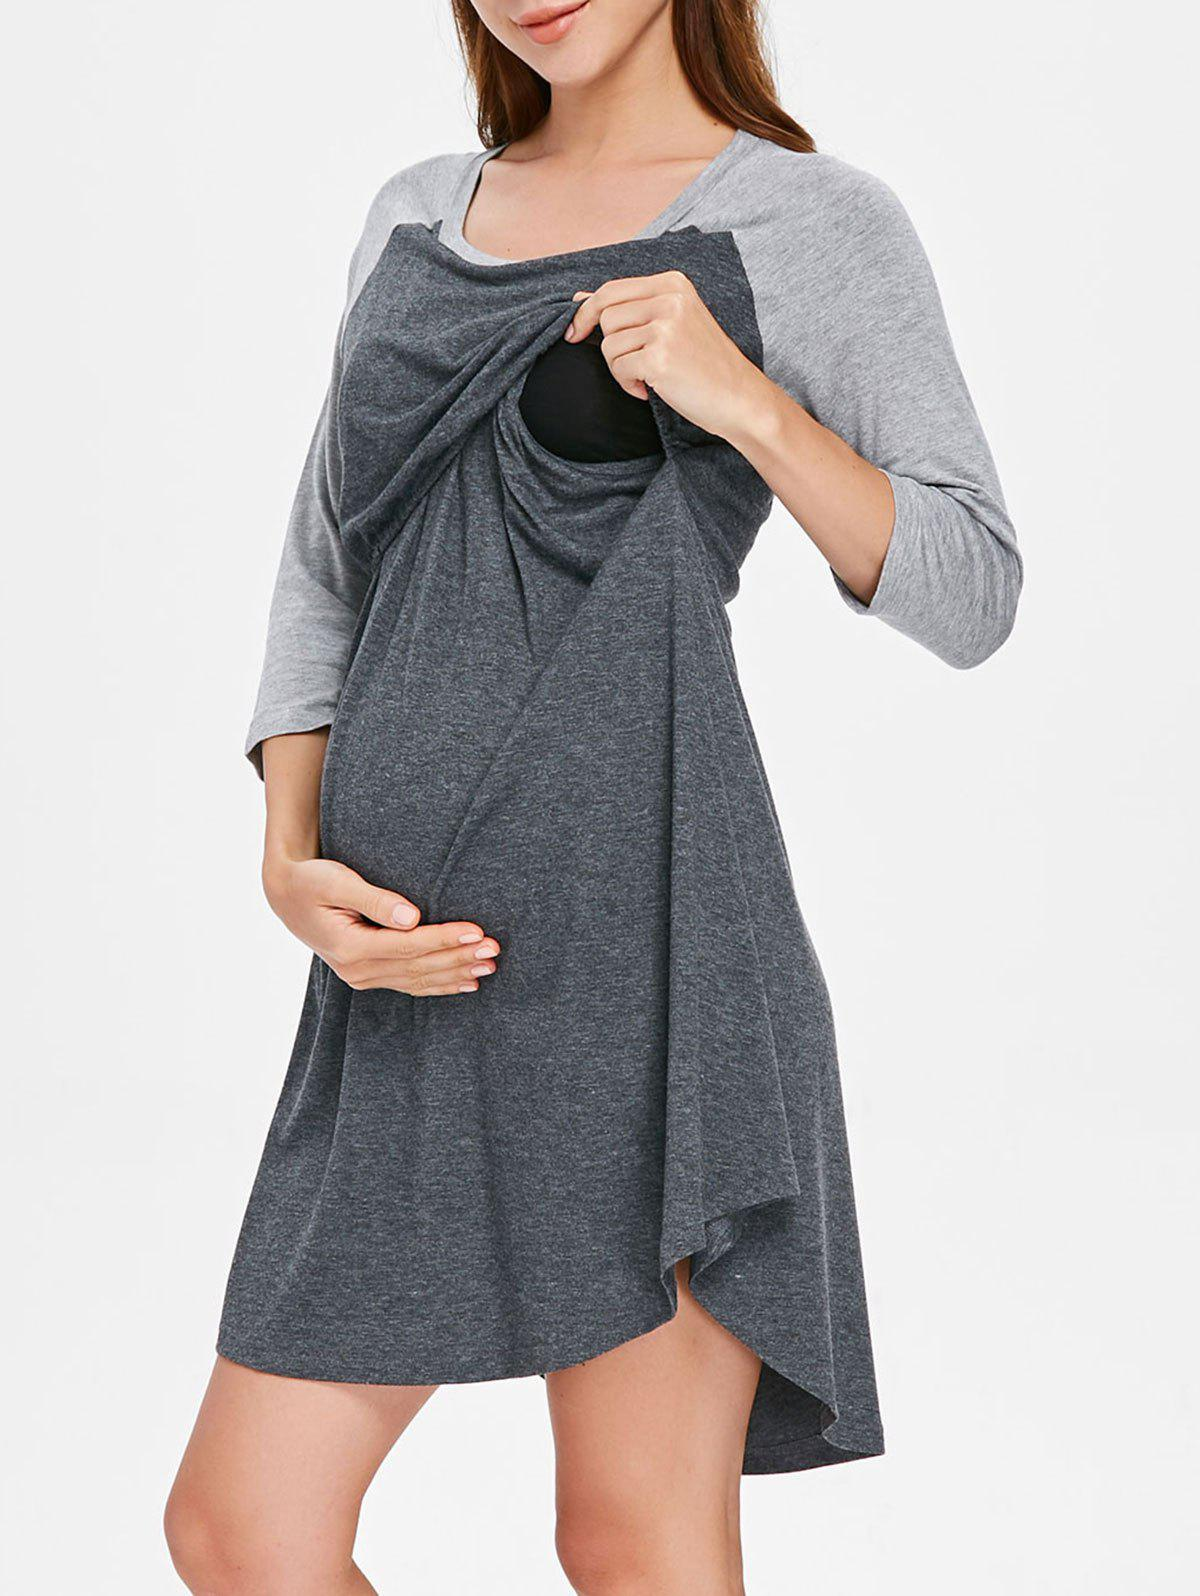 Round Collar Two Tone Maternity Sleep Dress - DARK GRAY M